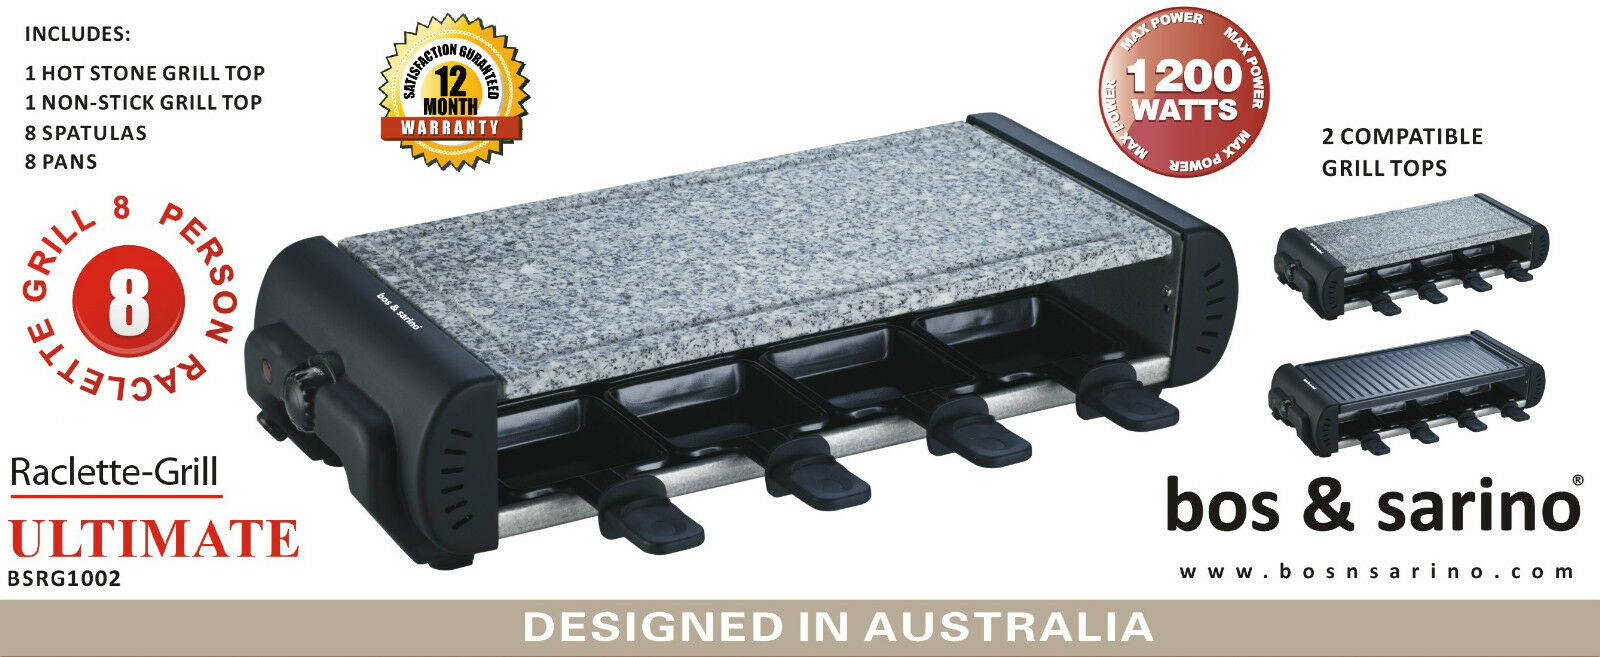 BOS & SARINO Swiss Raclette Grill Hot Stone Party Raclet BBQ 8 People 2 CookTop